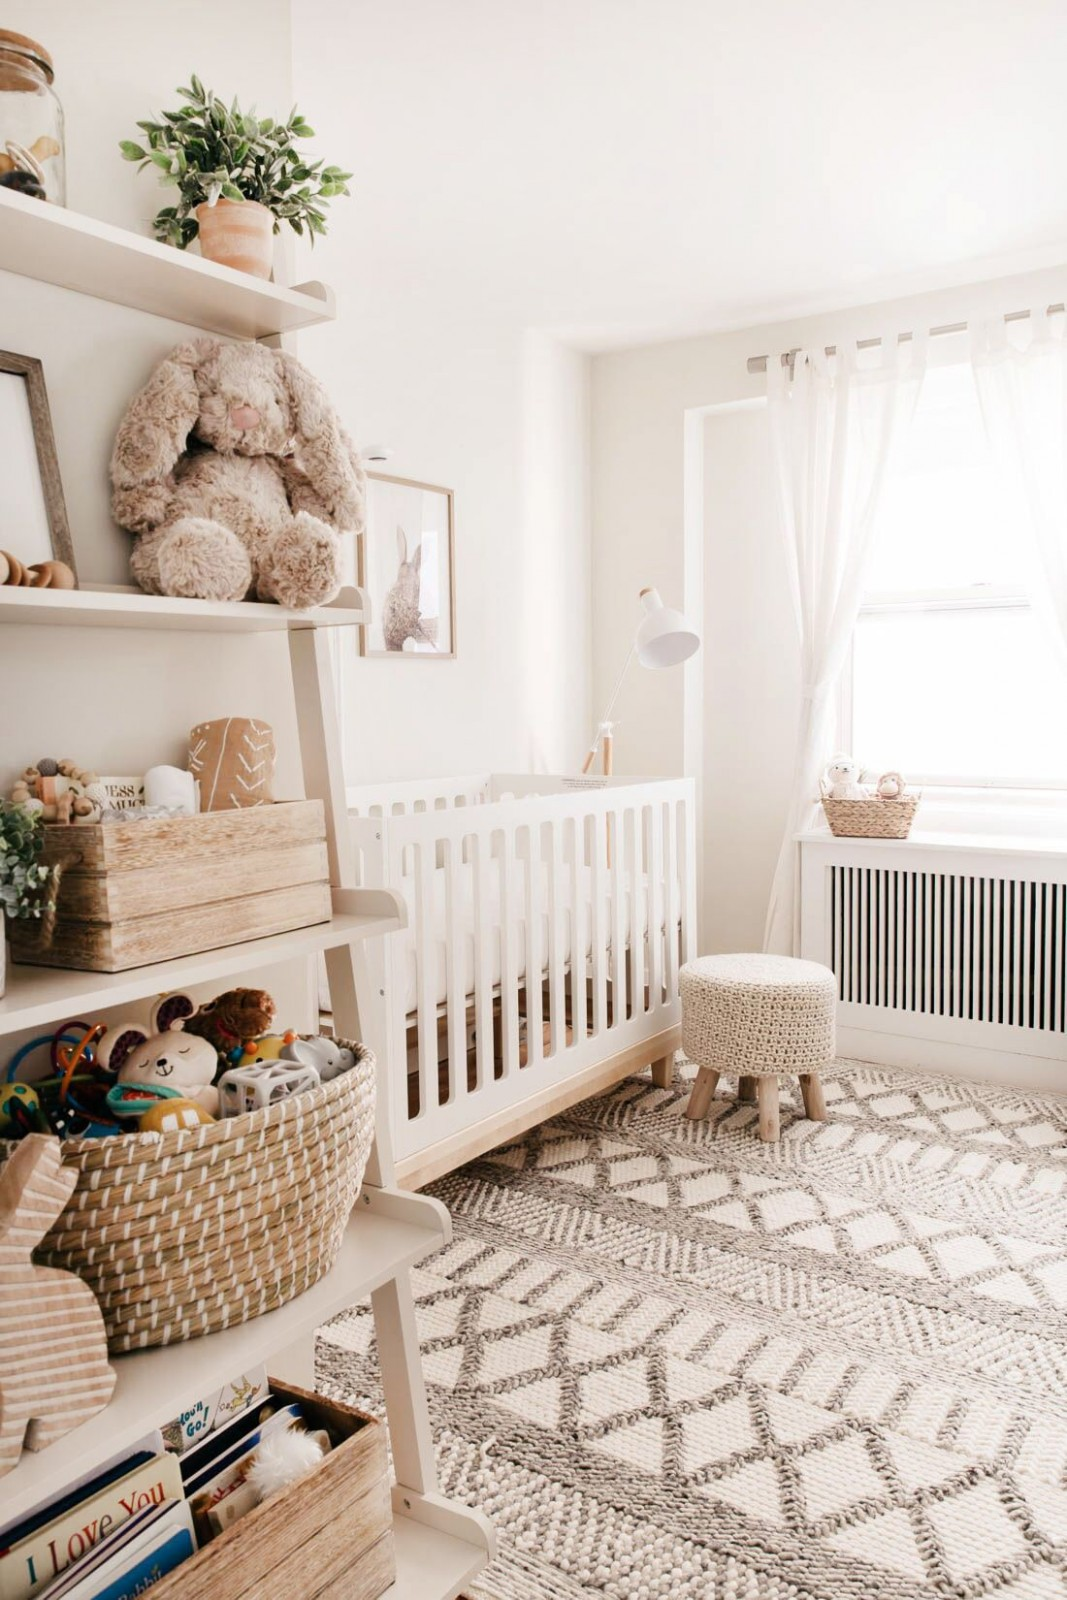 Nursery Reveal! A Gender Neutral Look with Blogger Kendall Kremer  - Baby Room Neutral